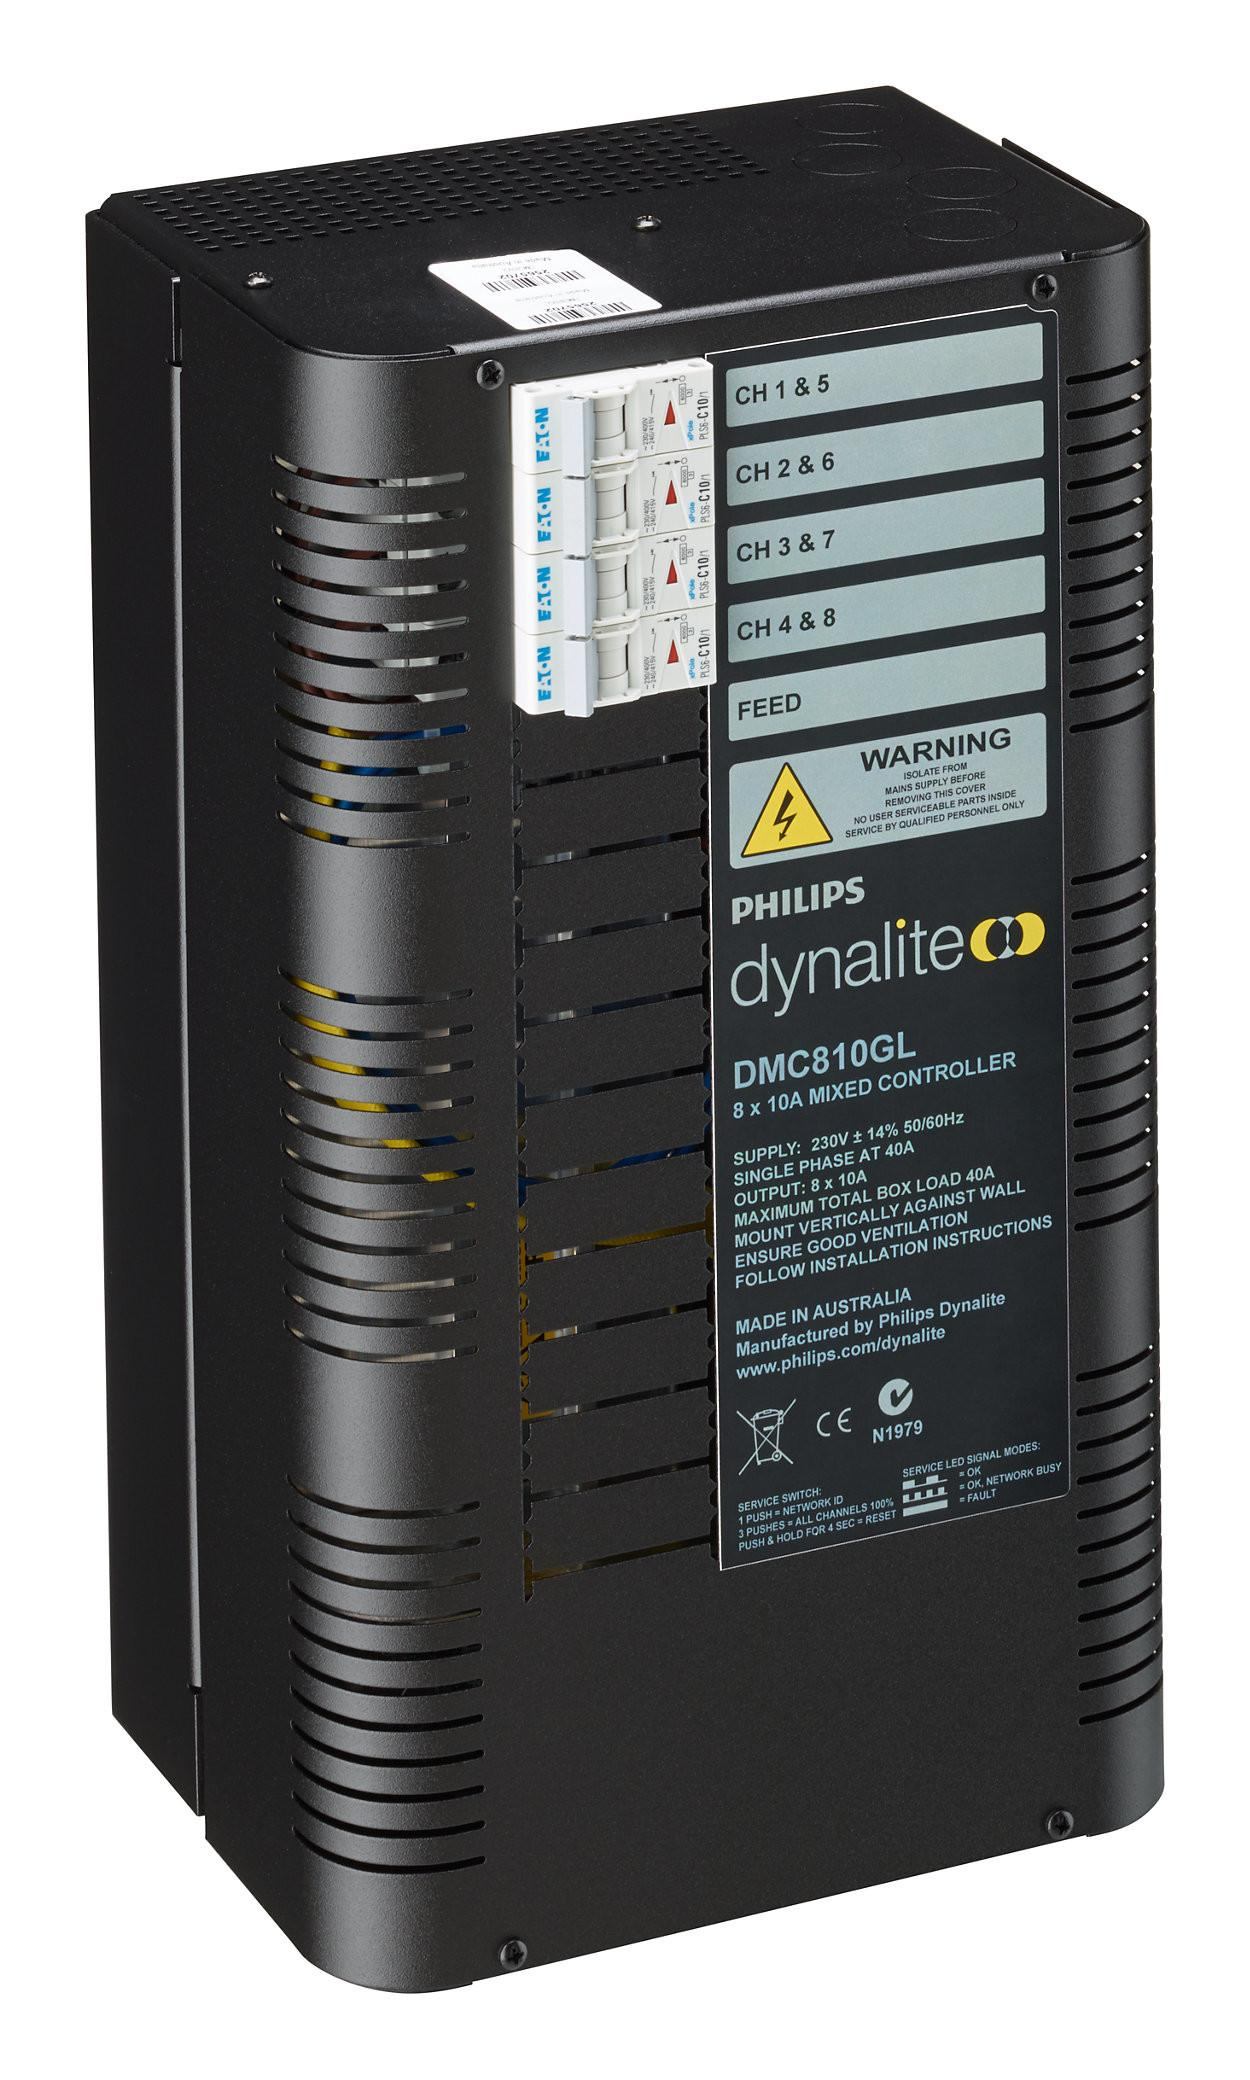 Dmc810gl Dynalite Multipurpose Controllers Philips Lighting